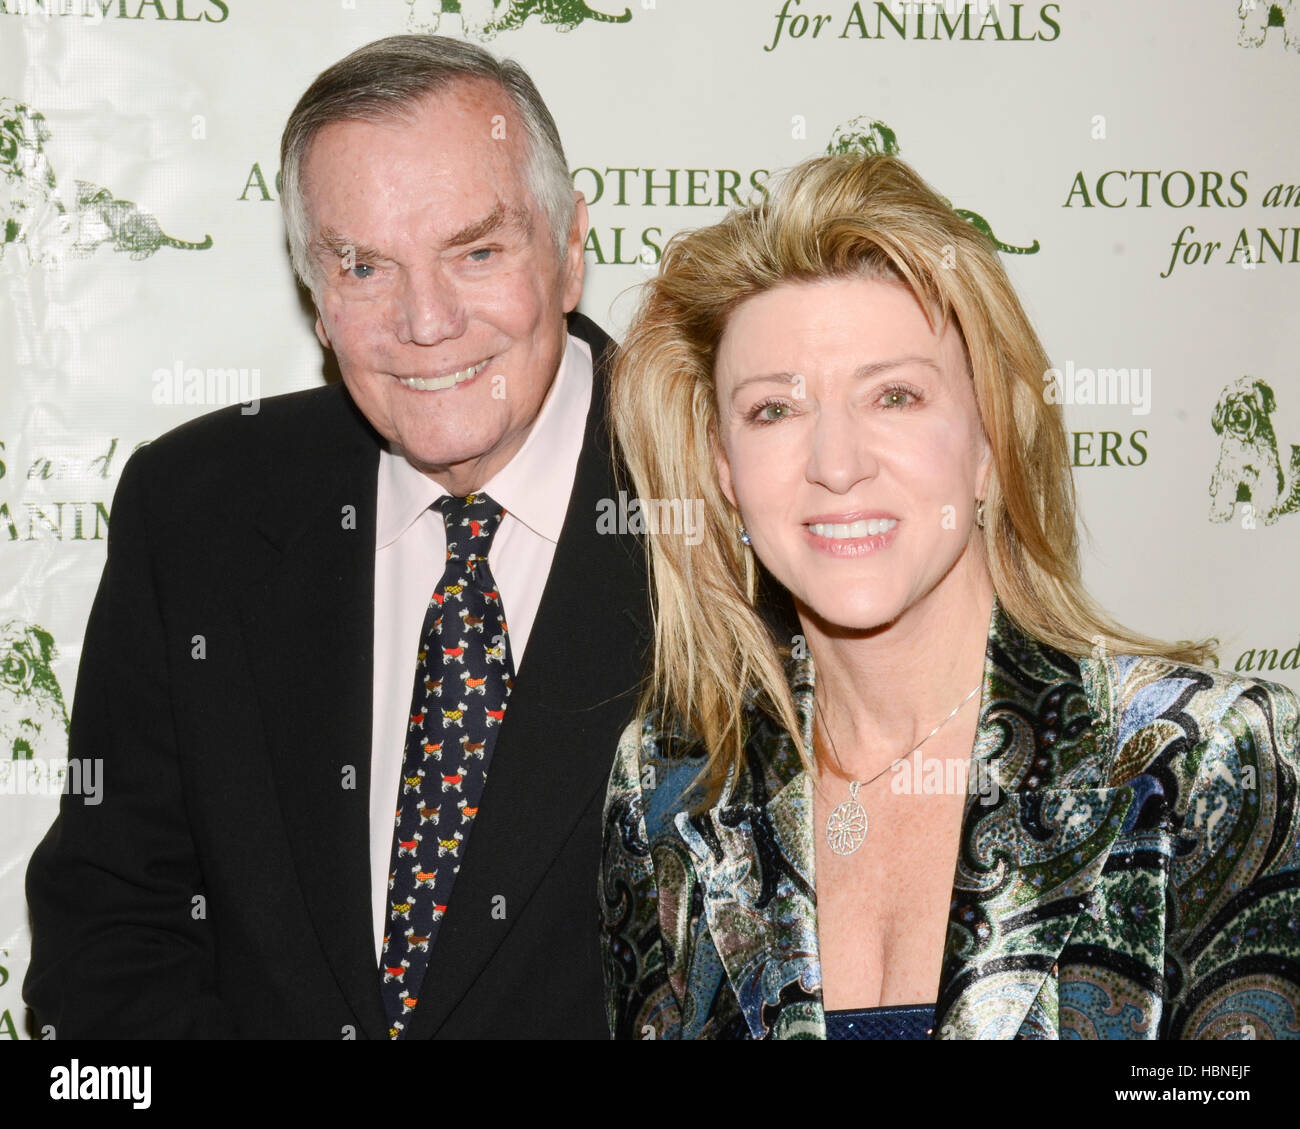 Peter Marshall and Laurie Marshall arrives at the Actors And Others For Animals' Joy To The Animals Luncheon - Stock Image